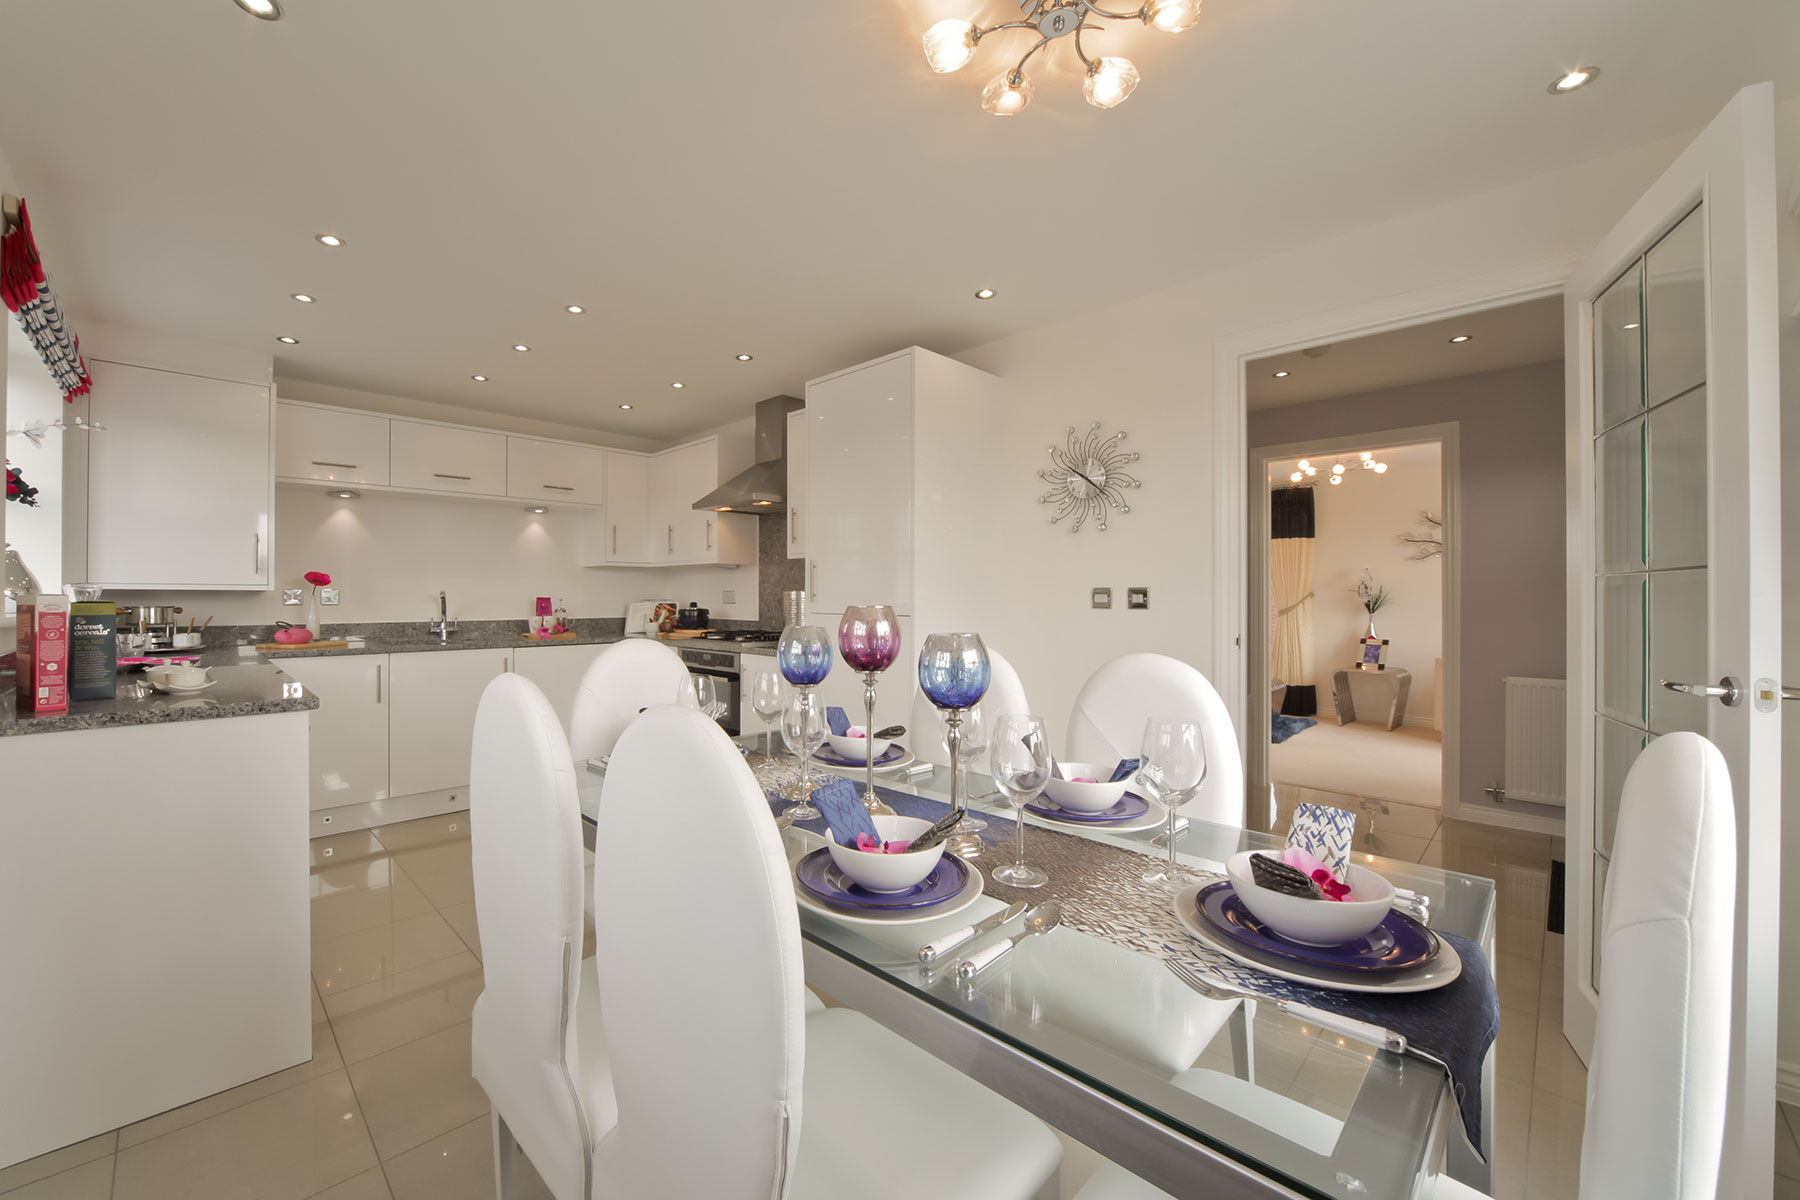 Typical Taylor Wimpey kitchen/dining area